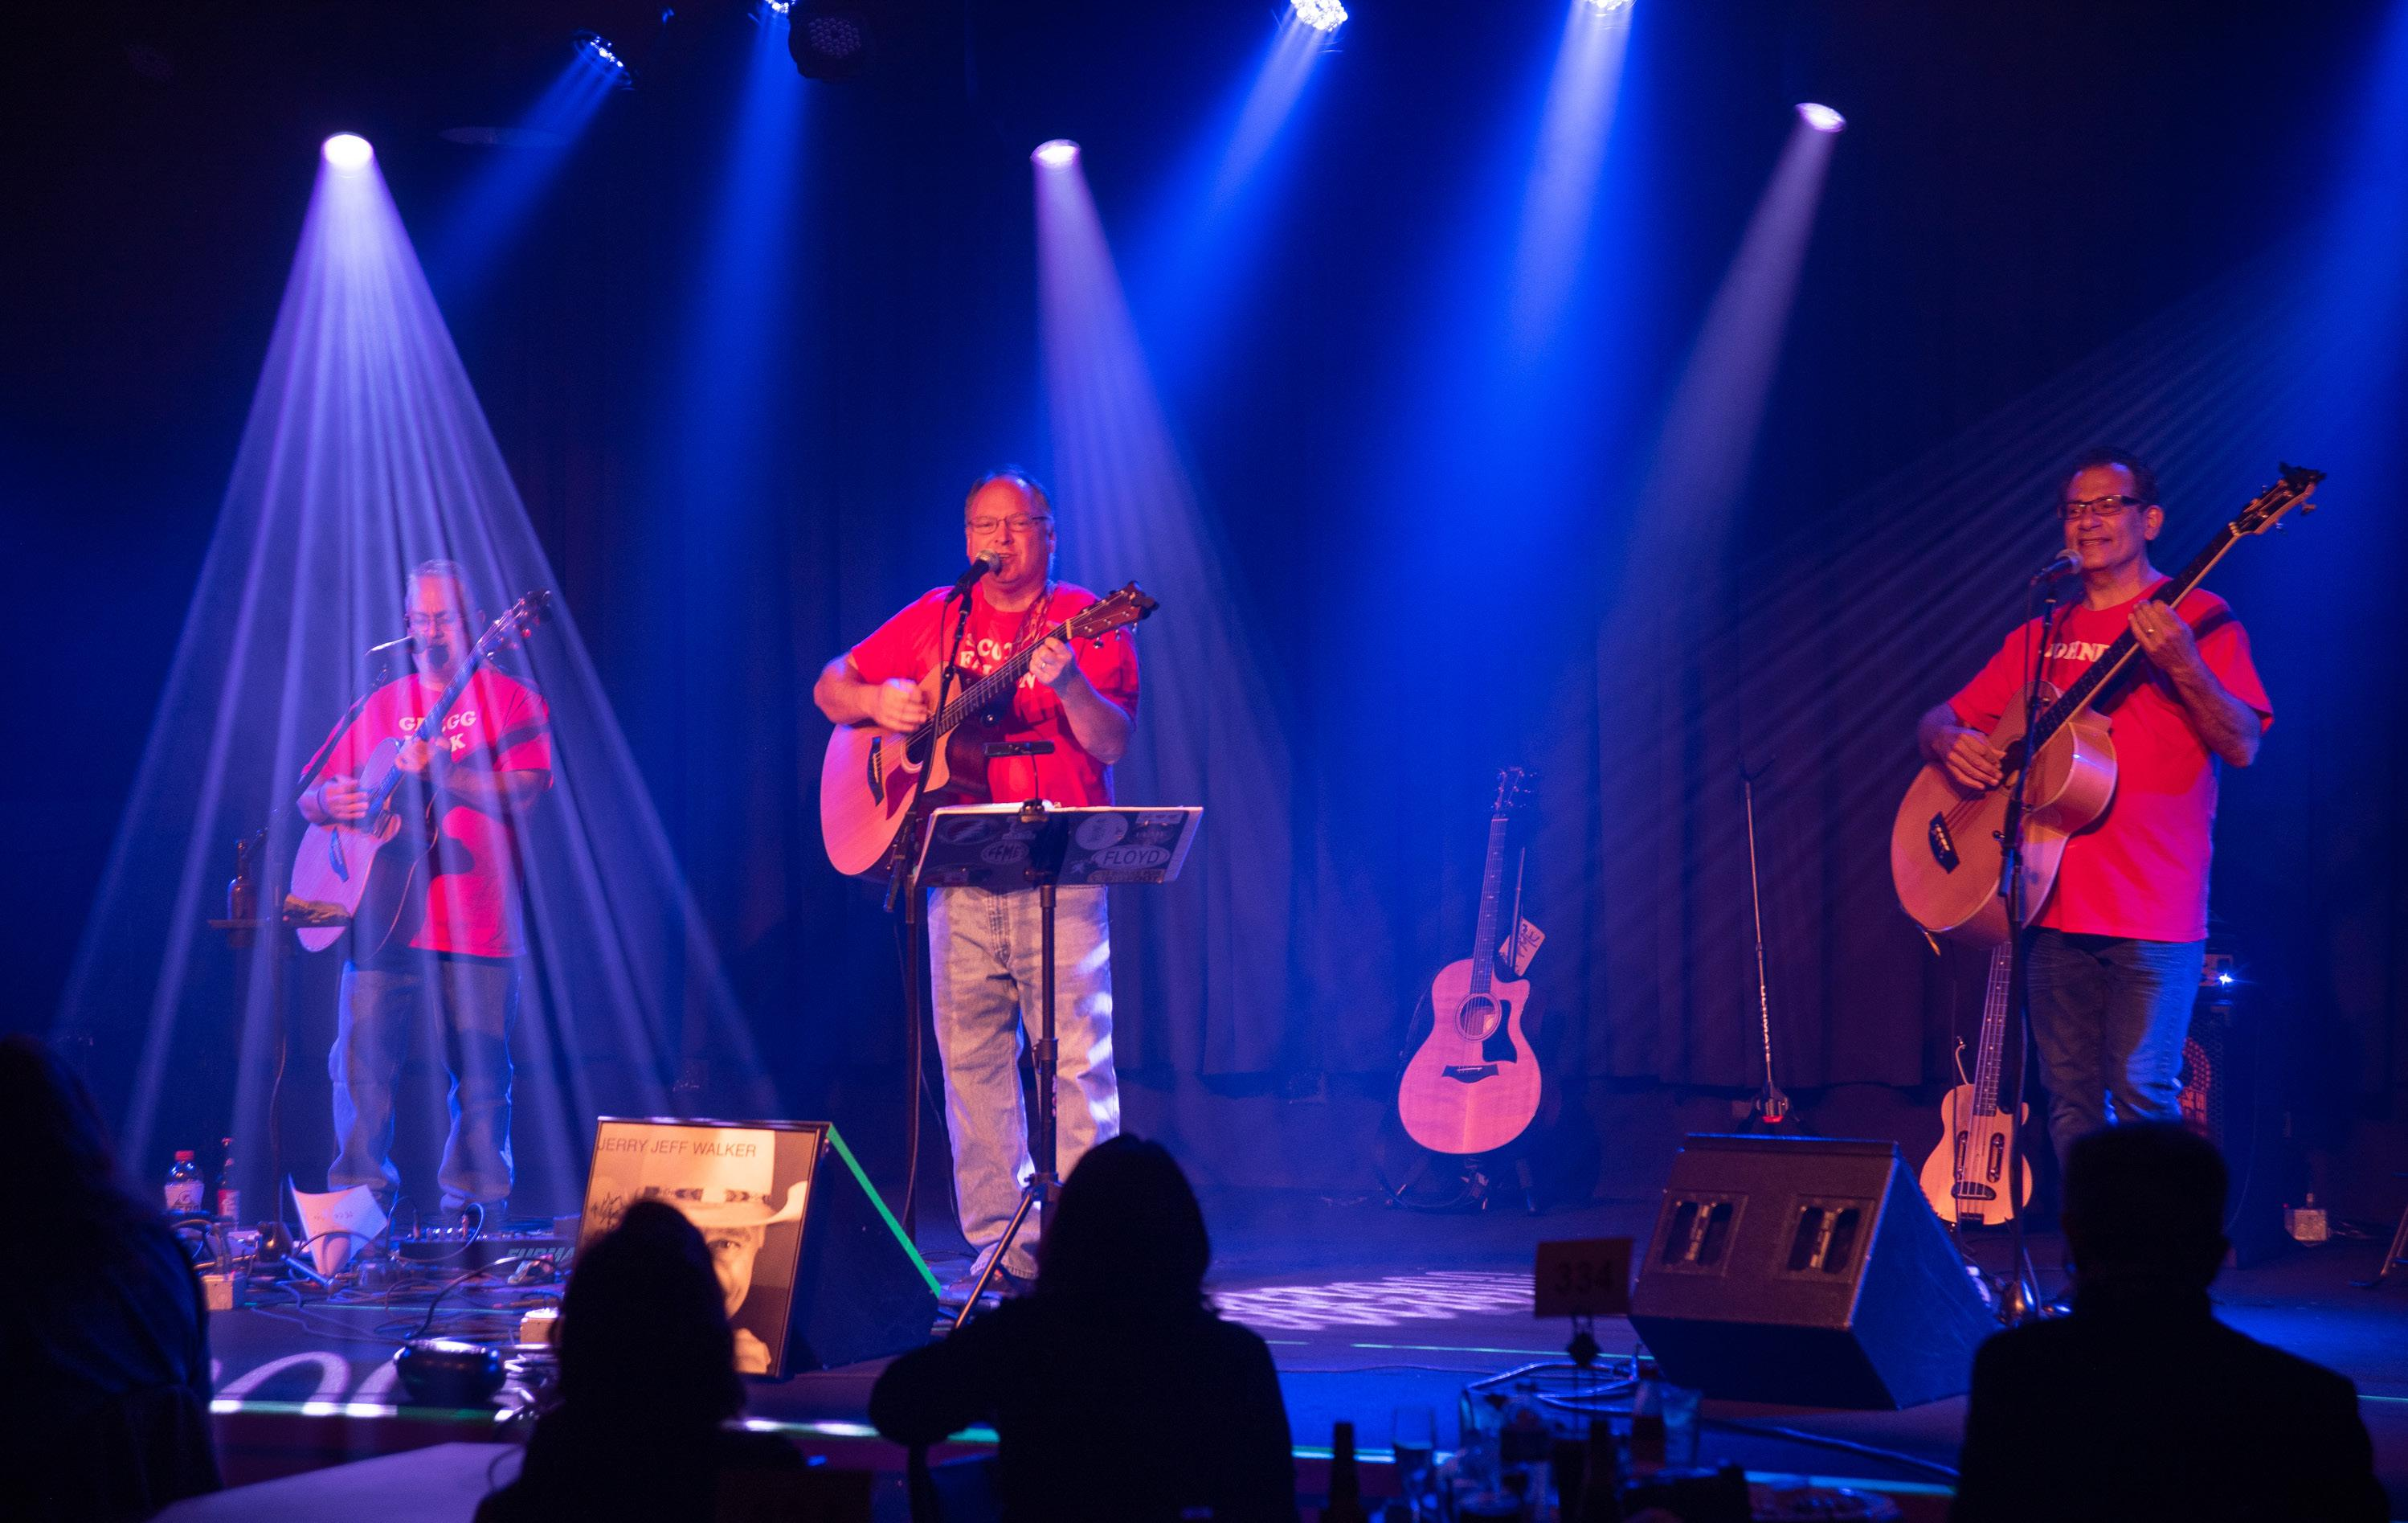 Page 60 of Free Flowing Musical Experience LIVE at The Birchmere